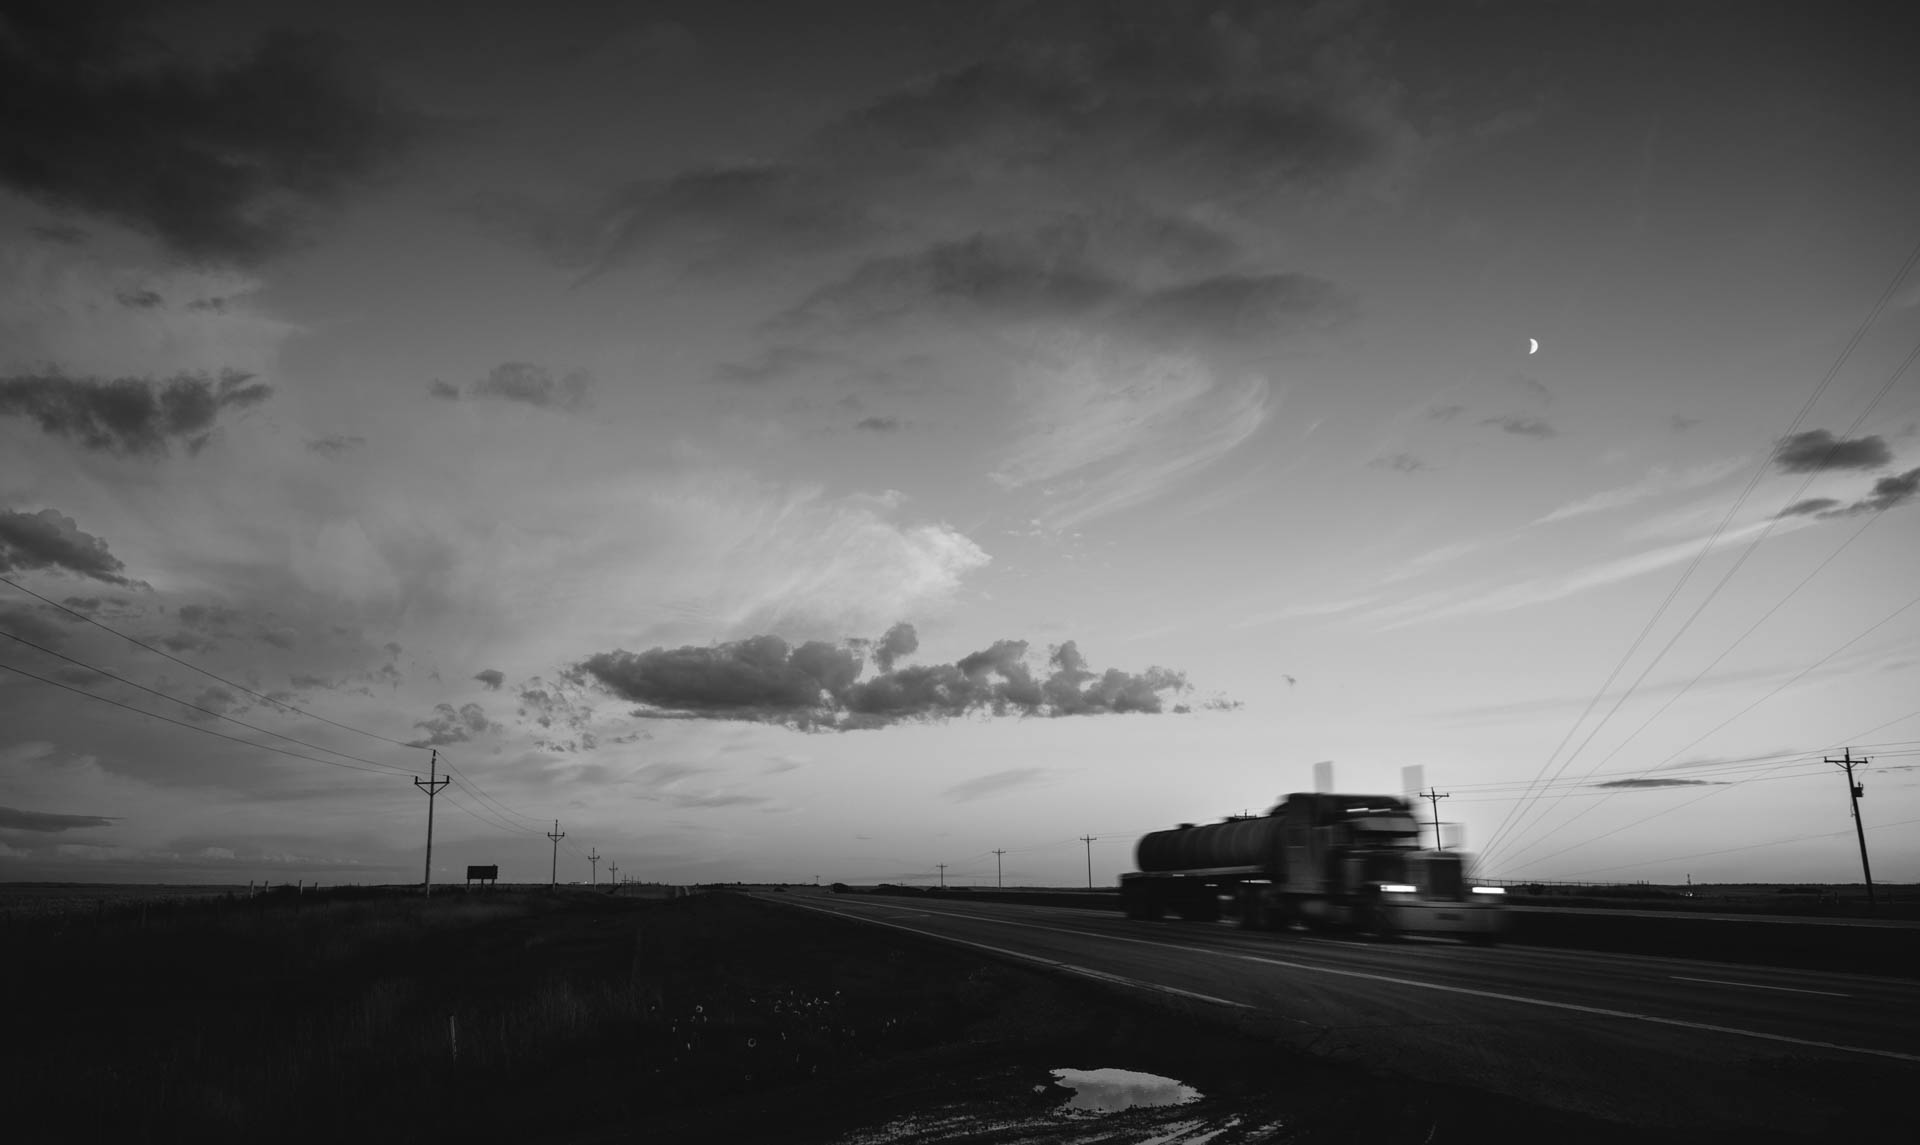 bakken-crude-oil-trucking-speeding-down-highway-at-sunset